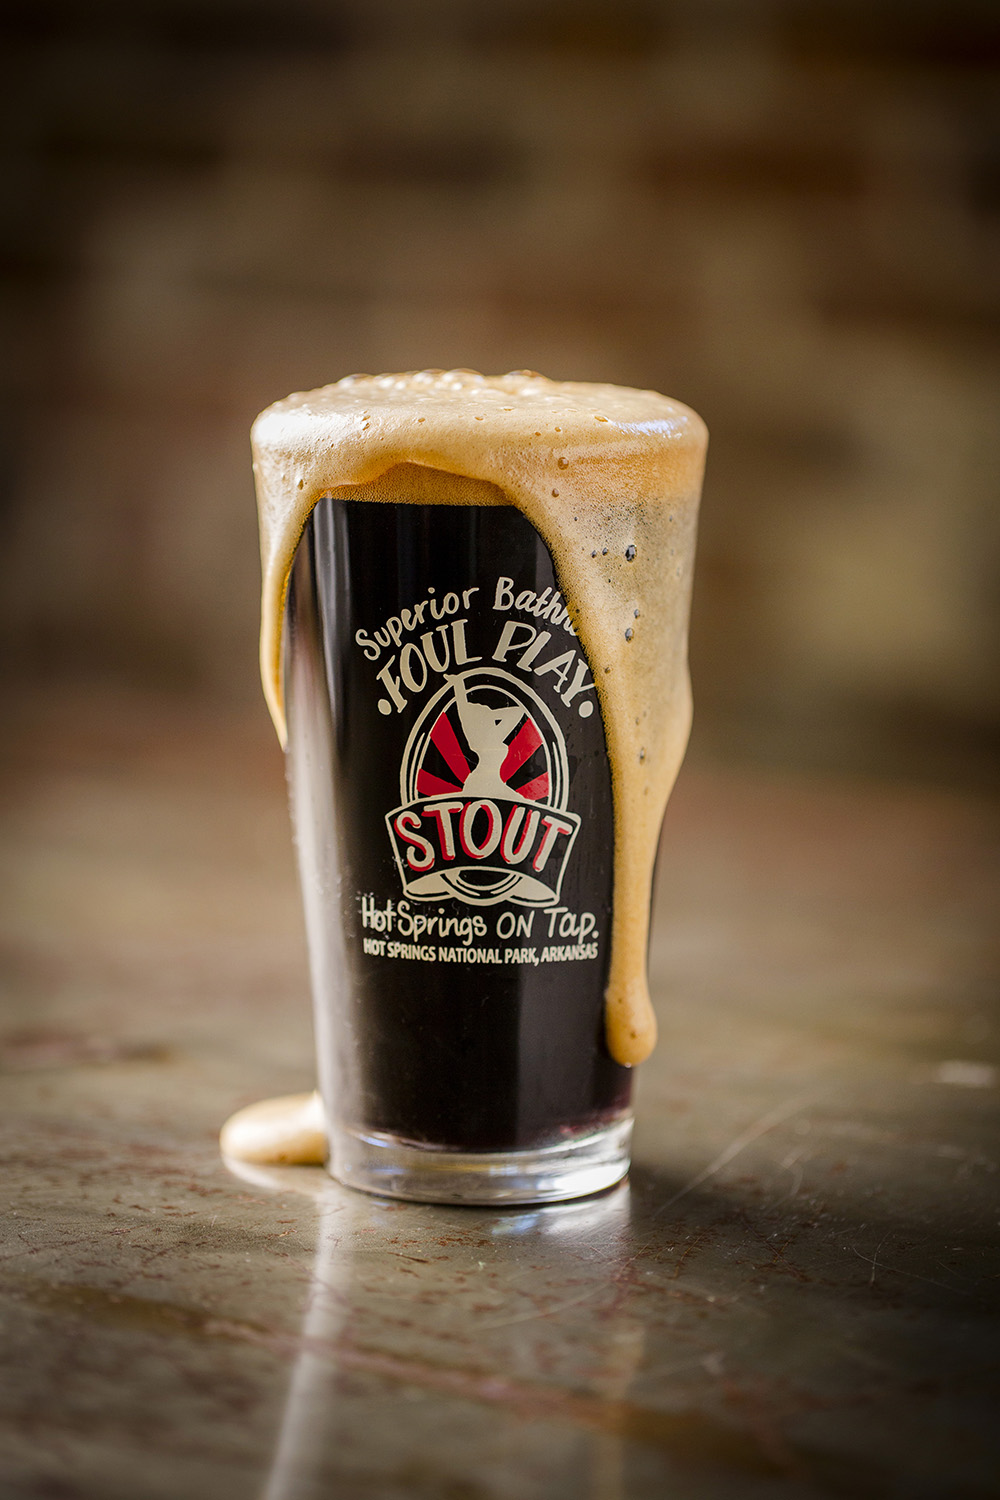 Foul Play Stout